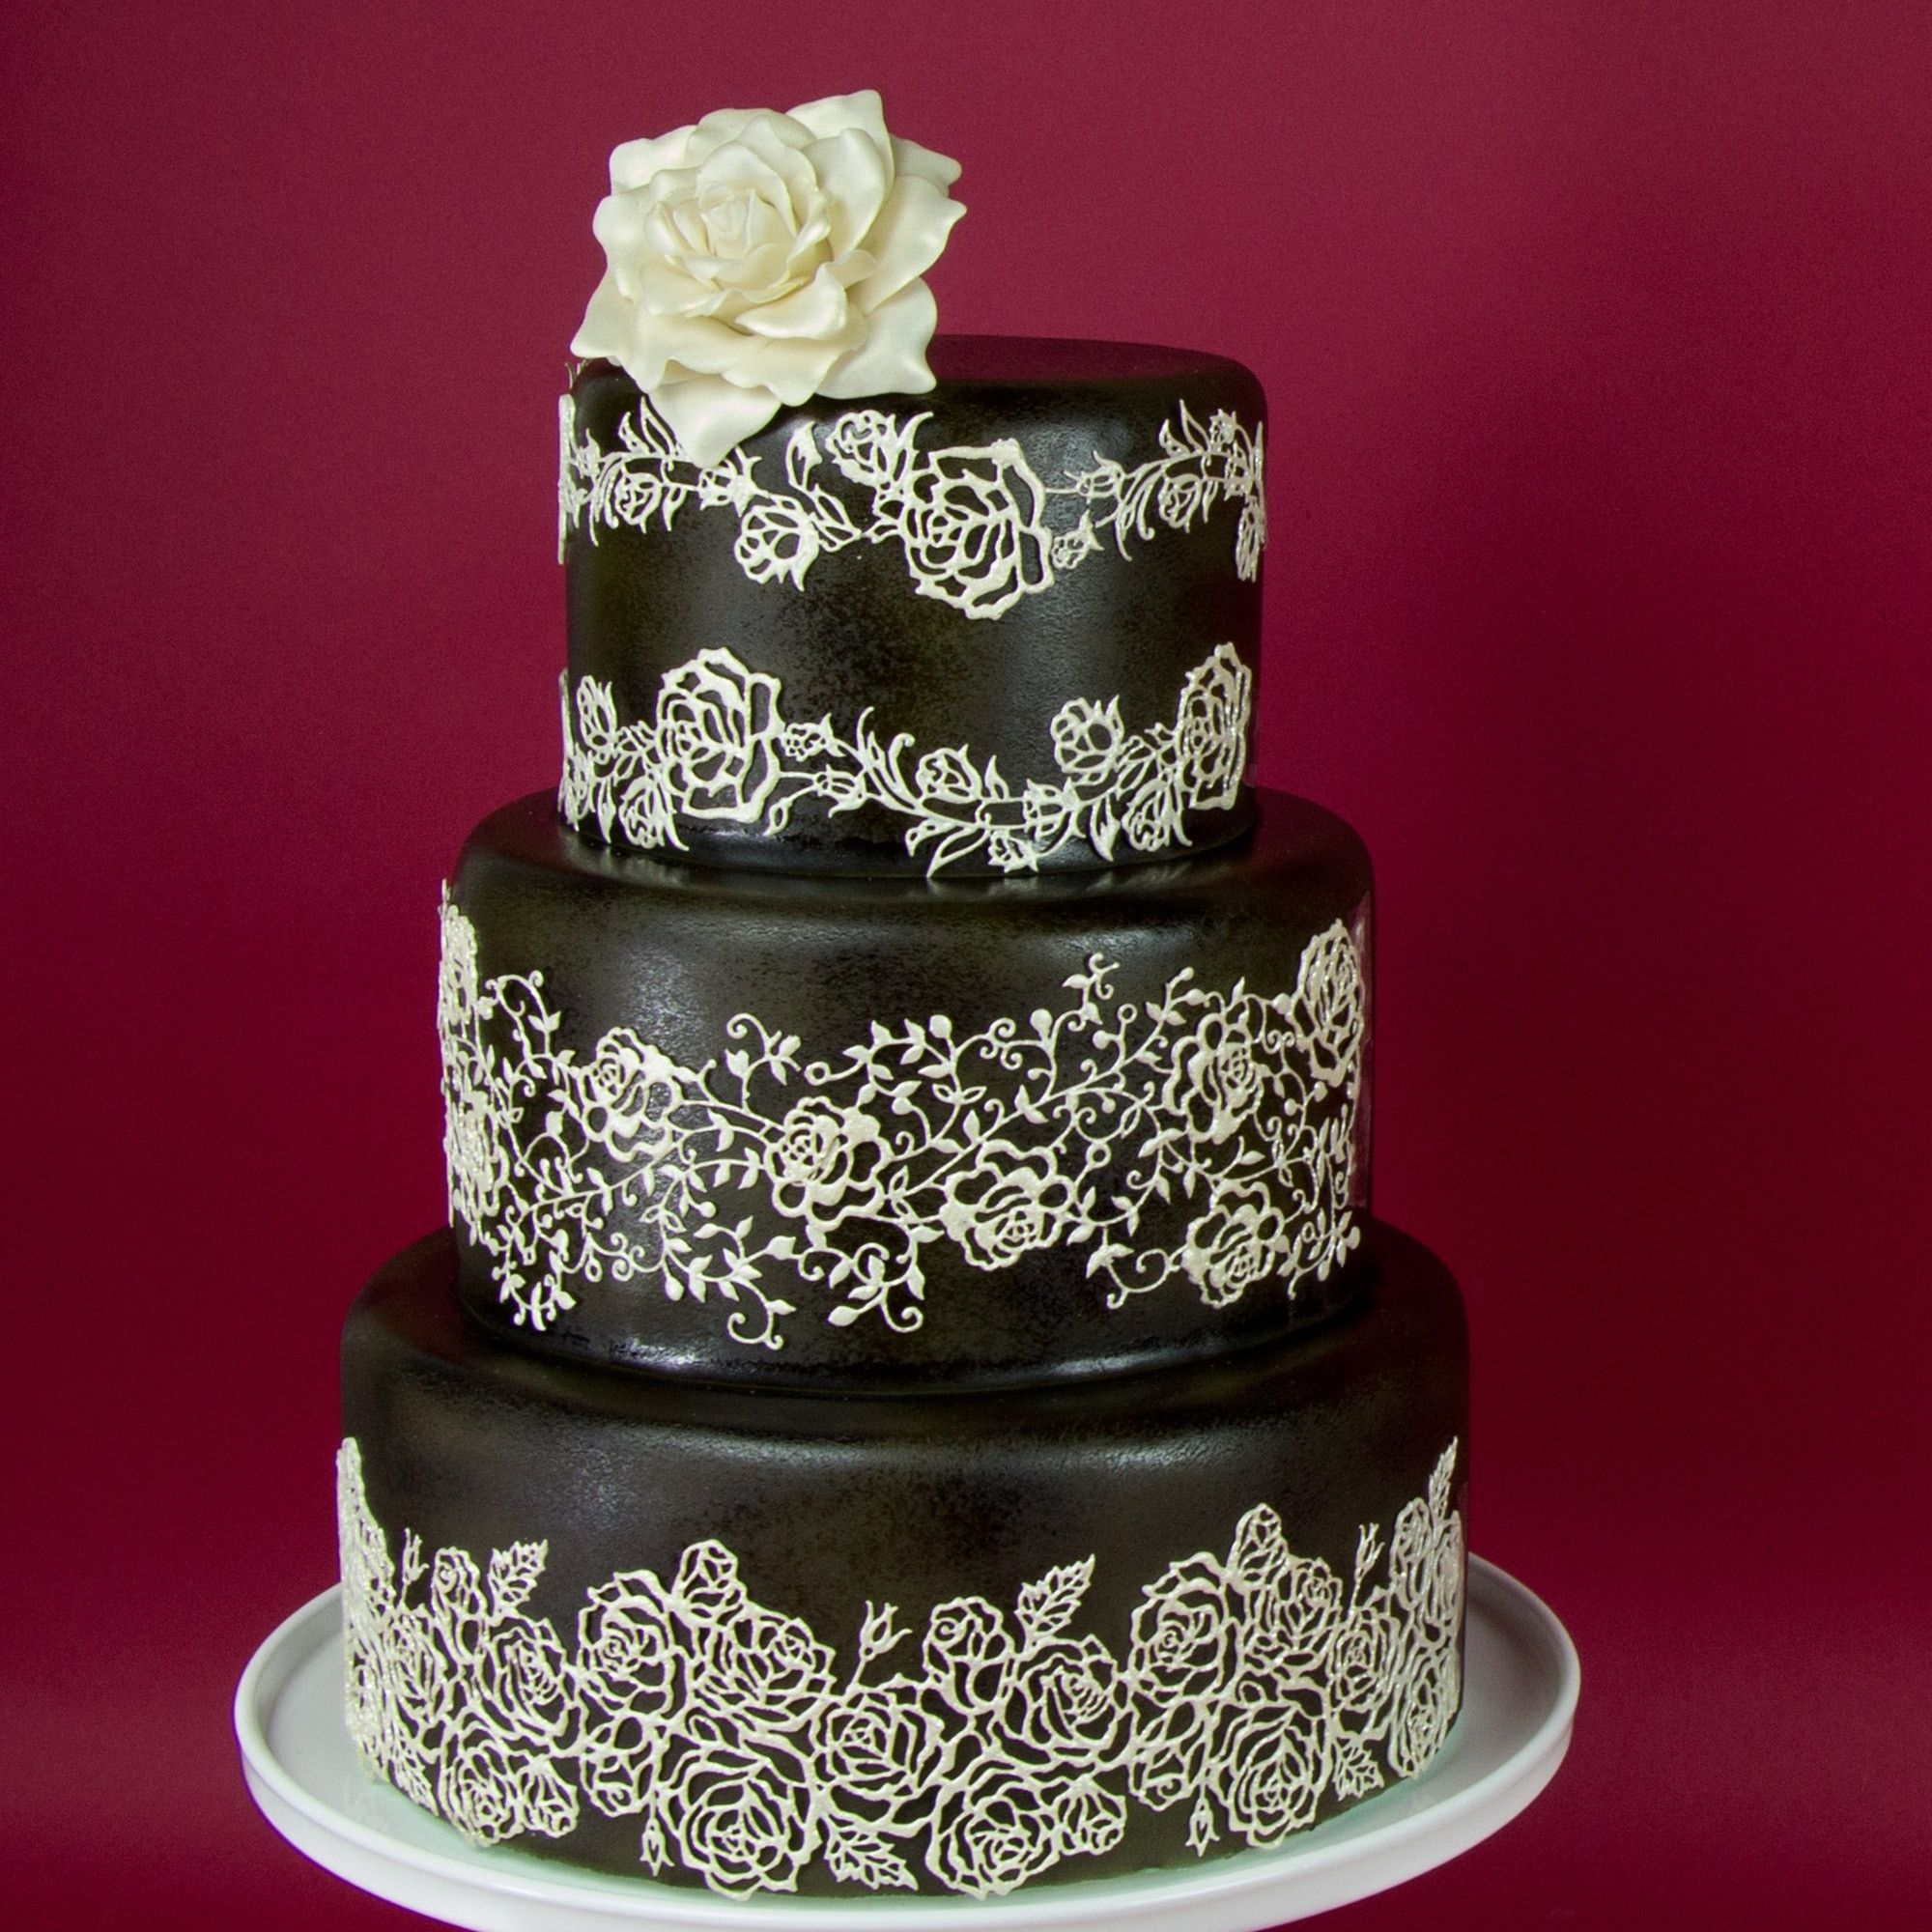 How Pre Made Wedding Cake Decorations Is Going To Change Your Business Strategies